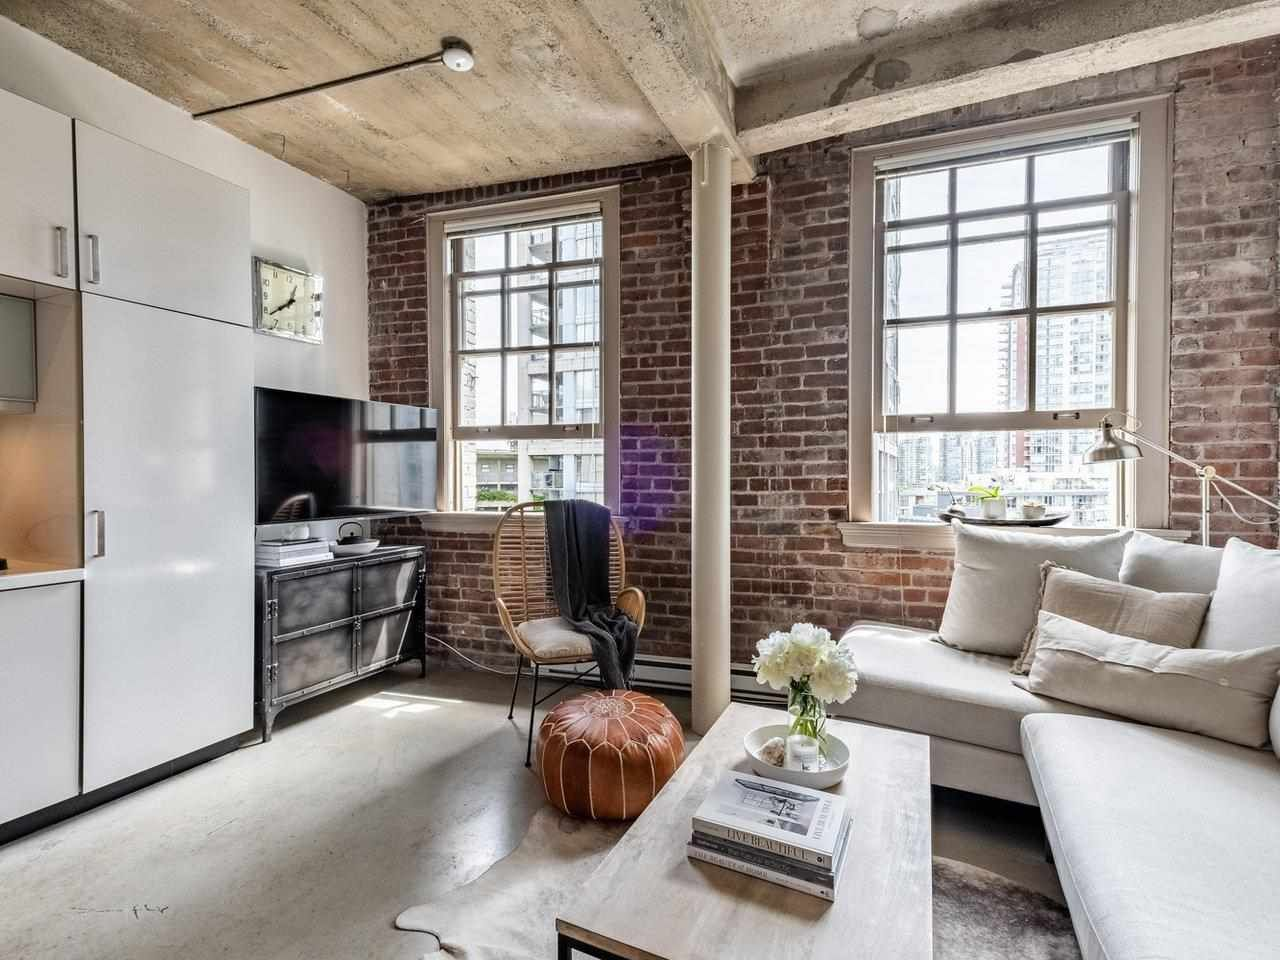 The epitome of cool - sleek loft-style 1 bd+office Nook + in-suite storage!